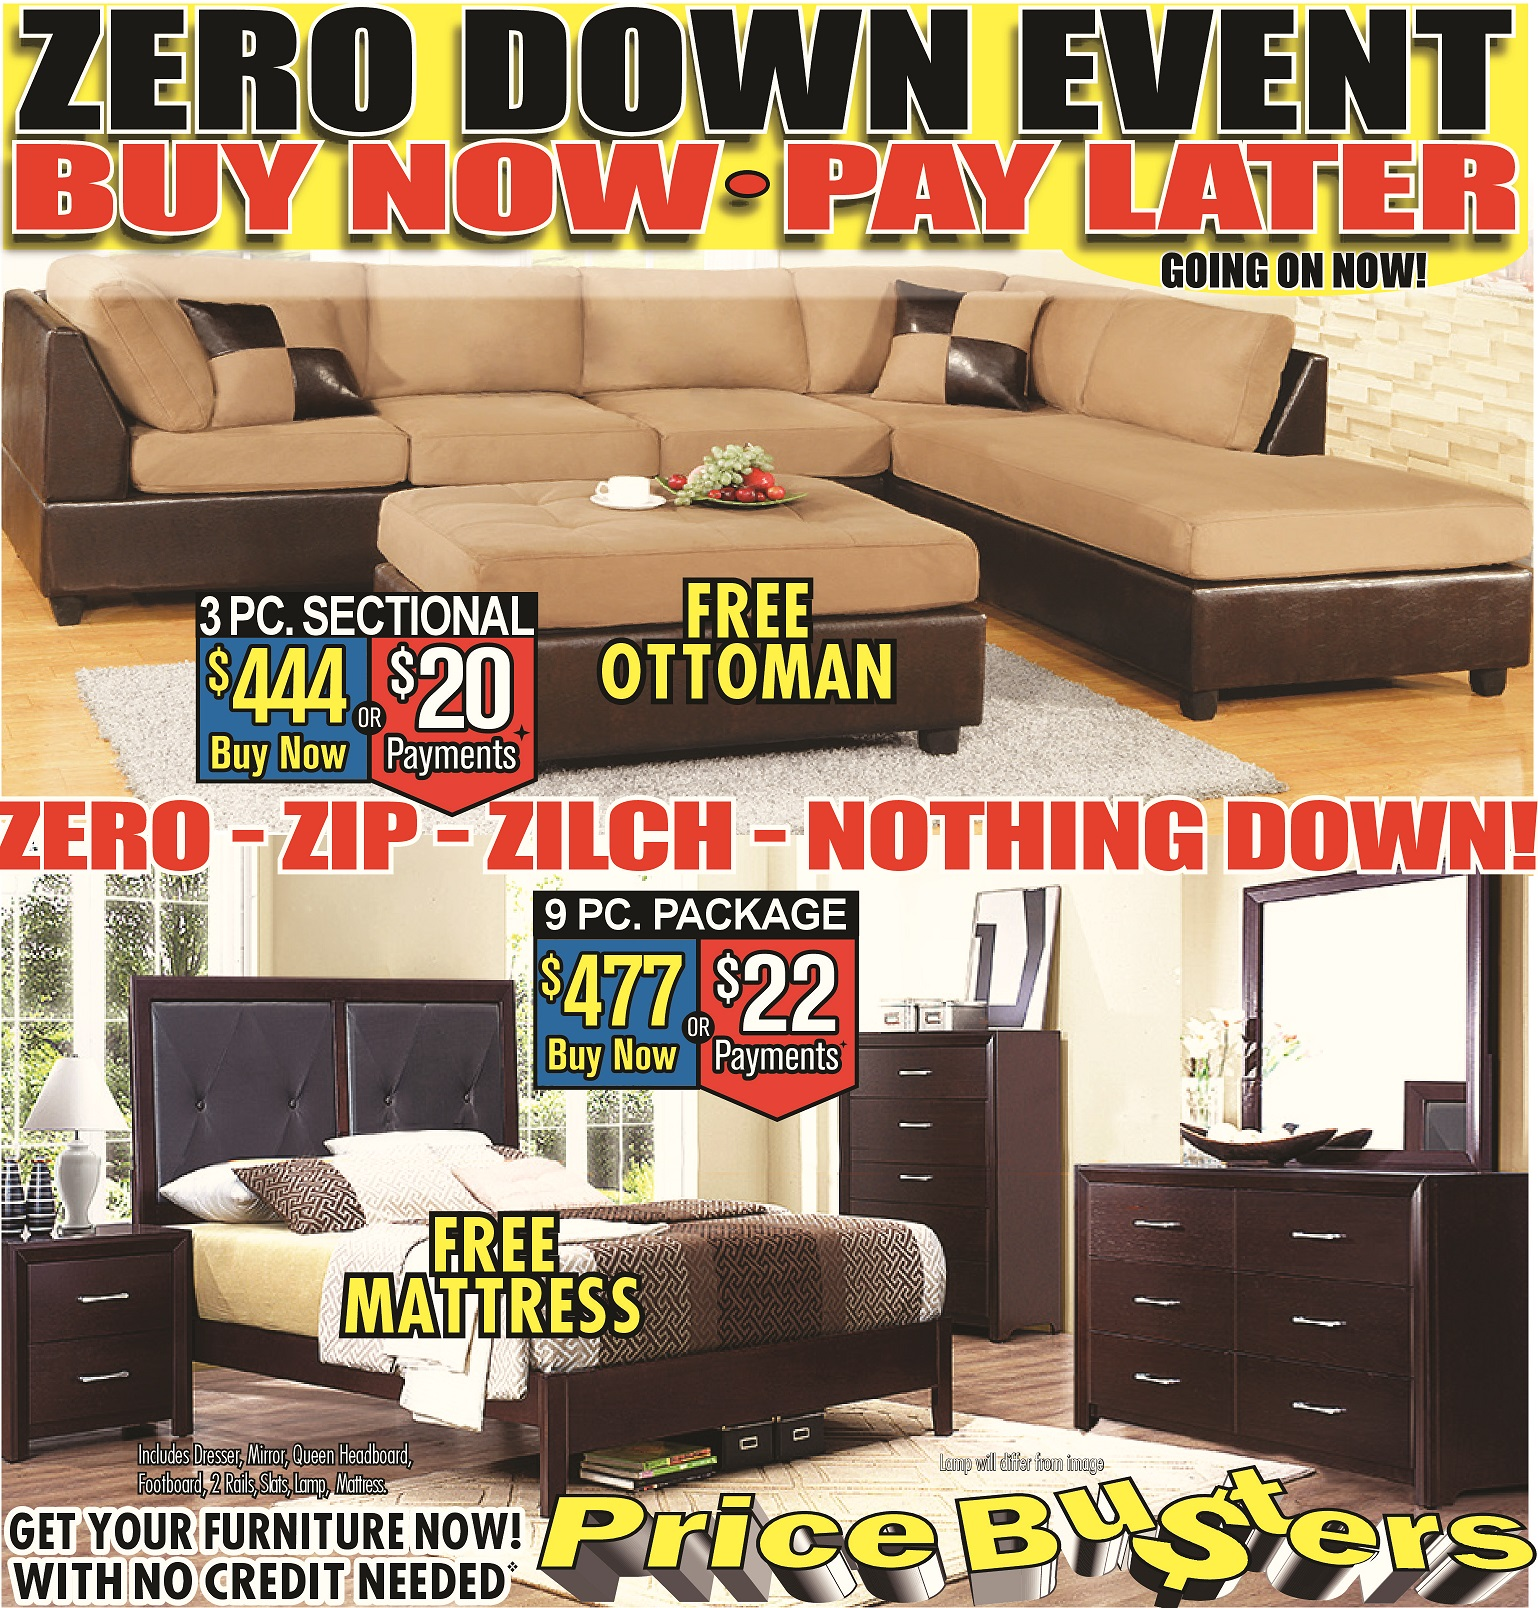 price busters furniture price busters furniture reviews 7856 eastern ave 526